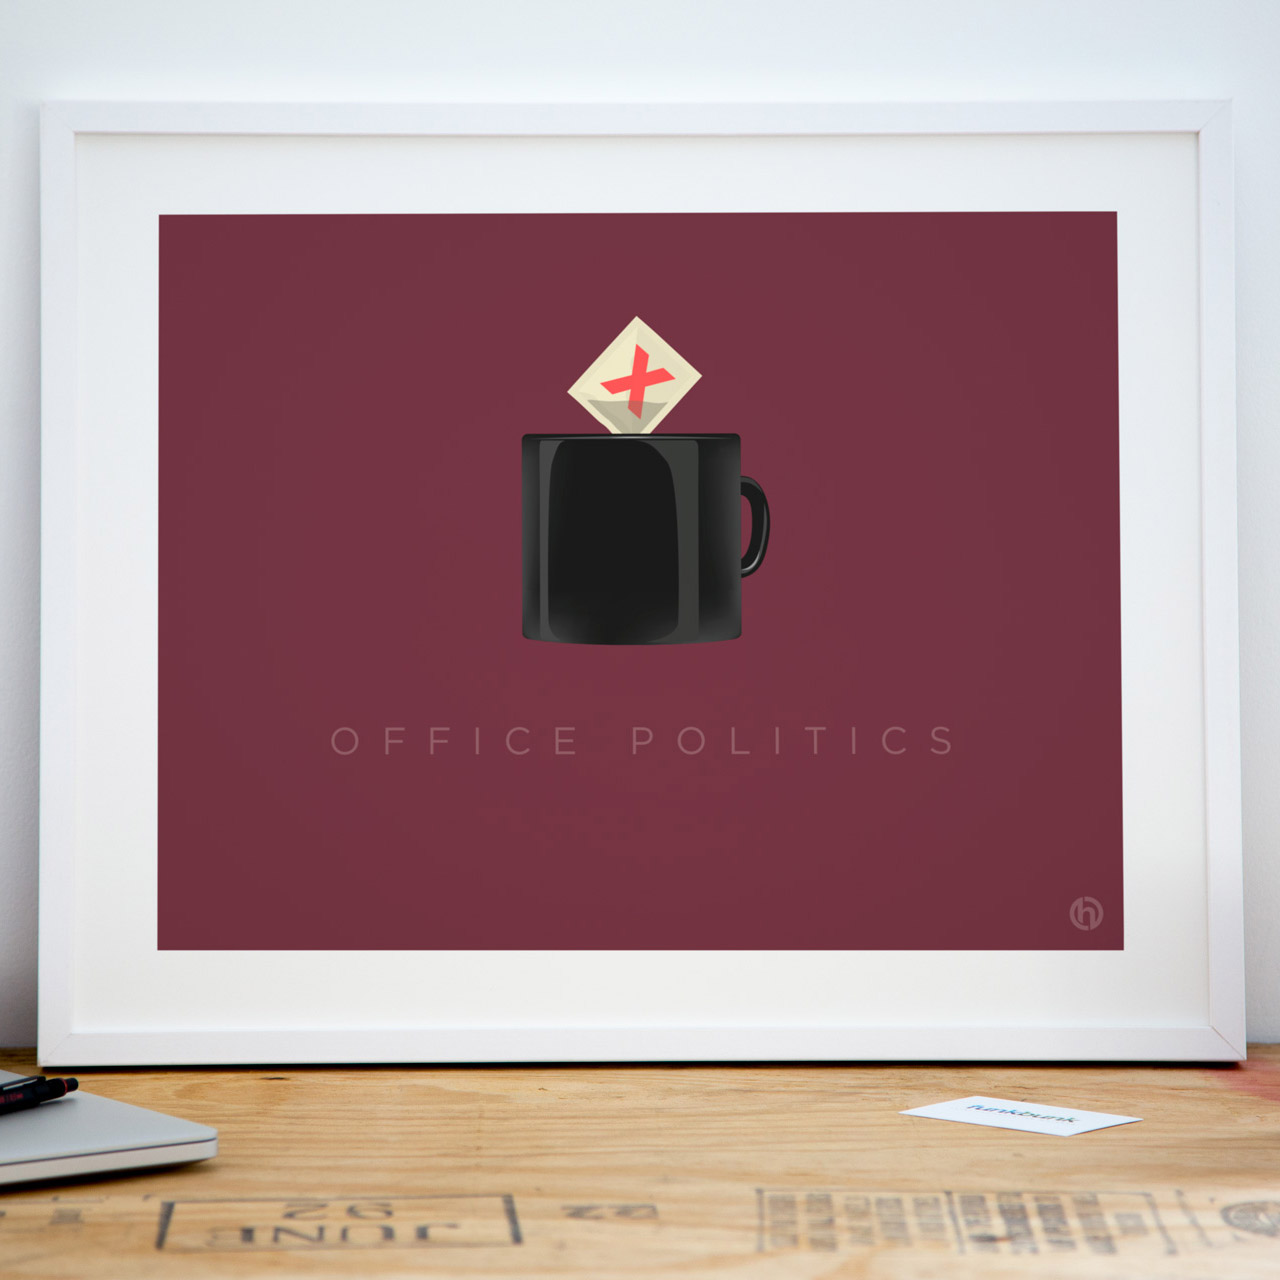 Office politics corporate jargon art print poster